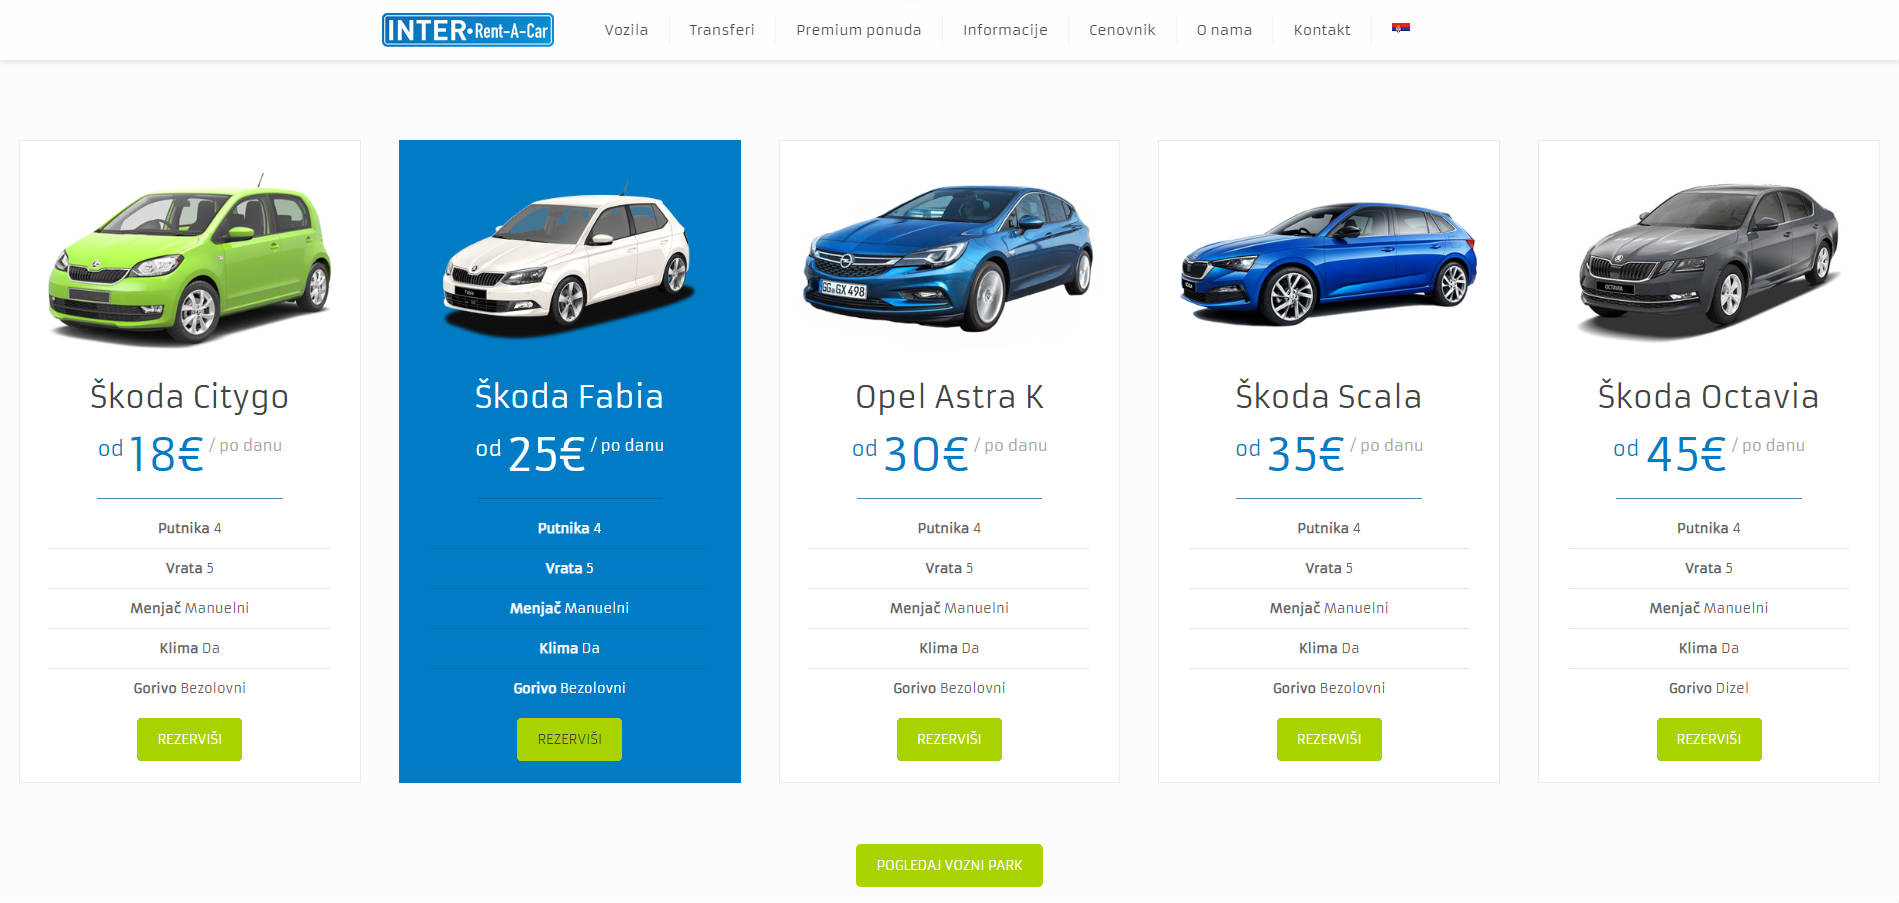 inter renta car izrada website-a